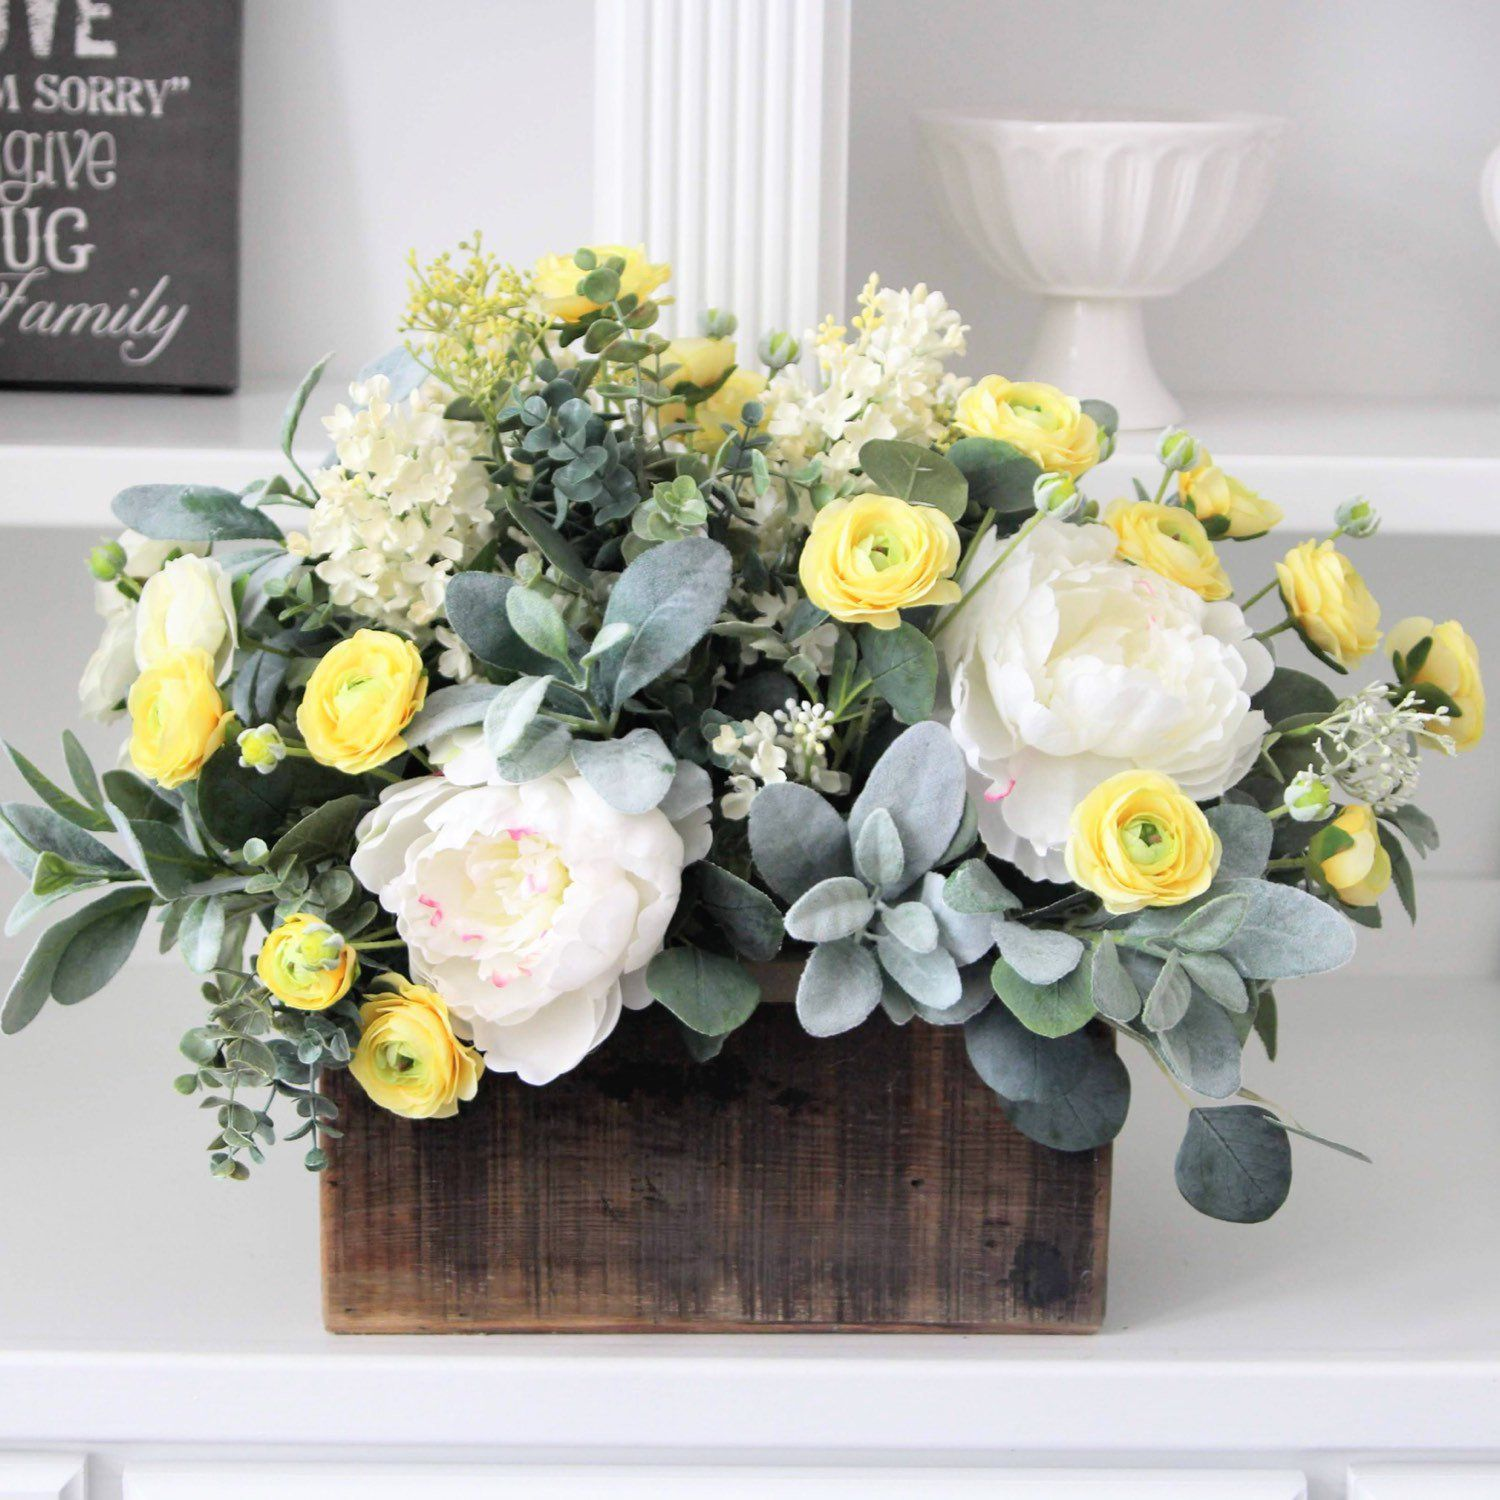 Farmhouse Decor Rustic Arrangement Spring Summer Floral Centerpiece Dining Table Or Kitchen Centerpiece Wood Box Centerpiece Rustic Arrangements Floral Arrangements Diy Floral Centerpieces